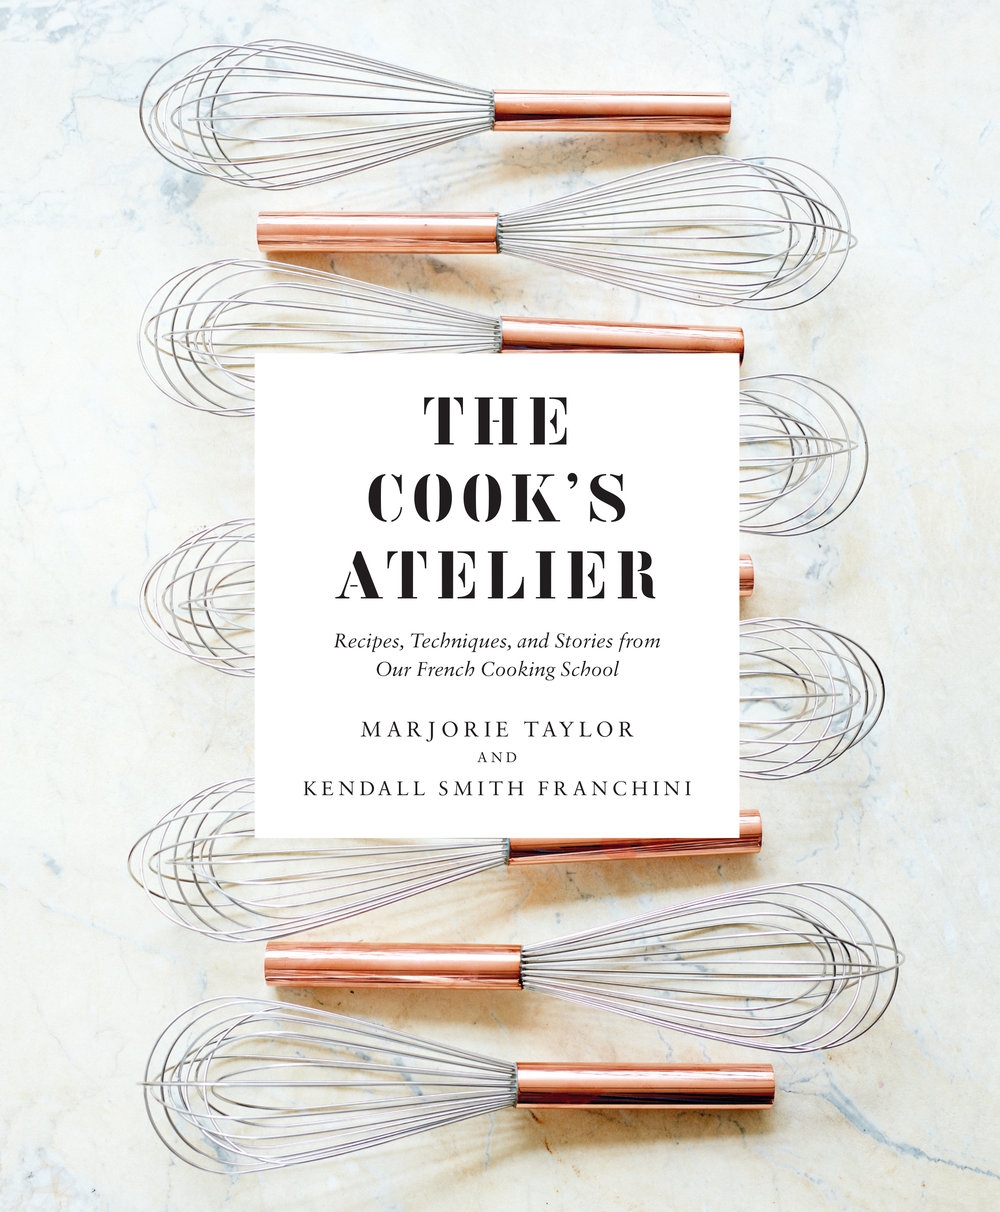 The Cook's Atelier Cookbook